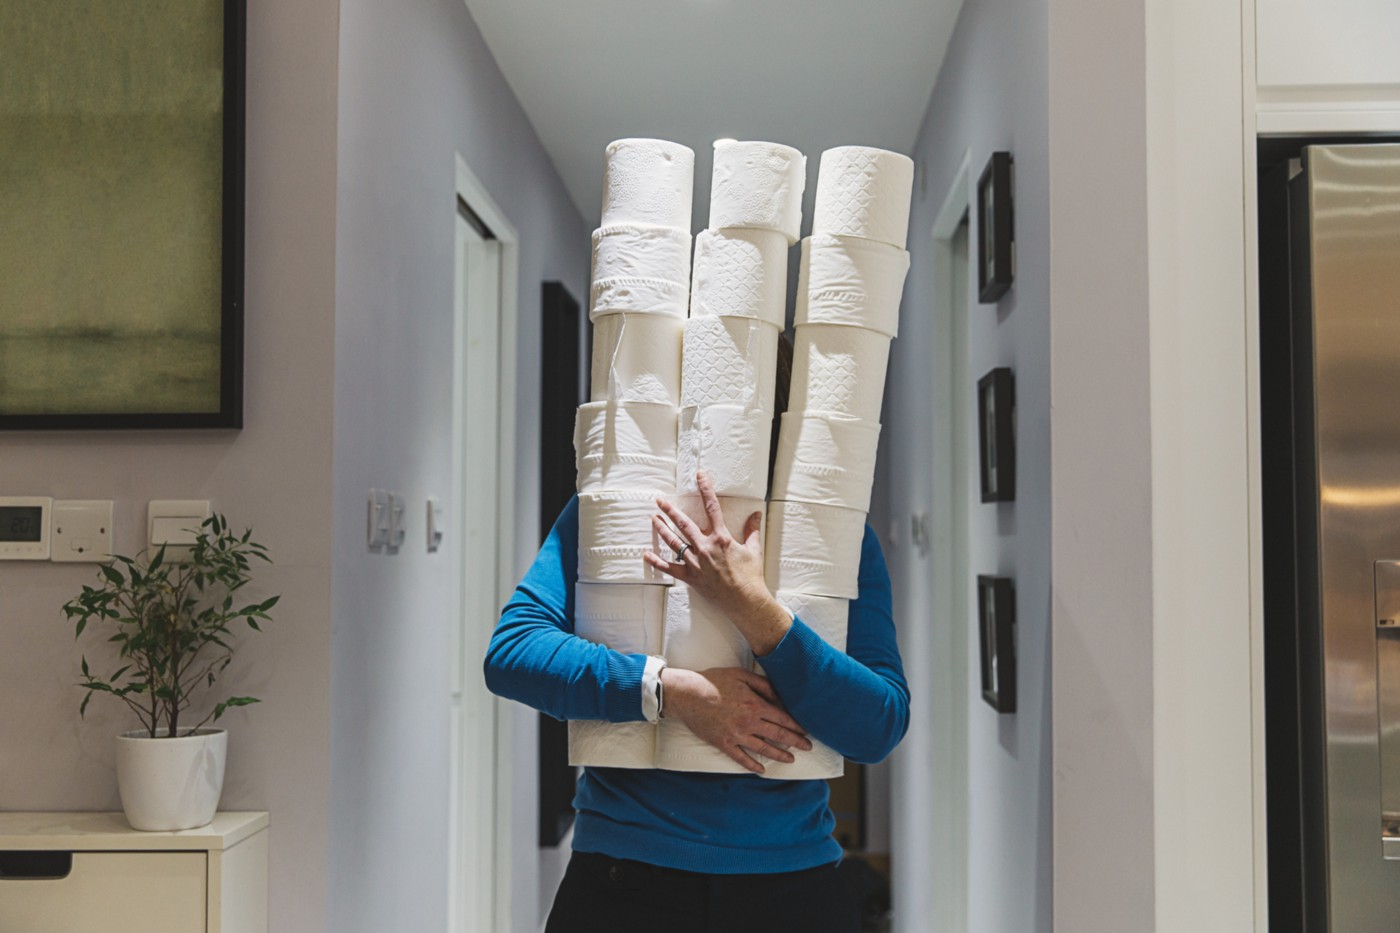 A photo of a person holding a tower of toilet paper rolls as they walk down the hallway.